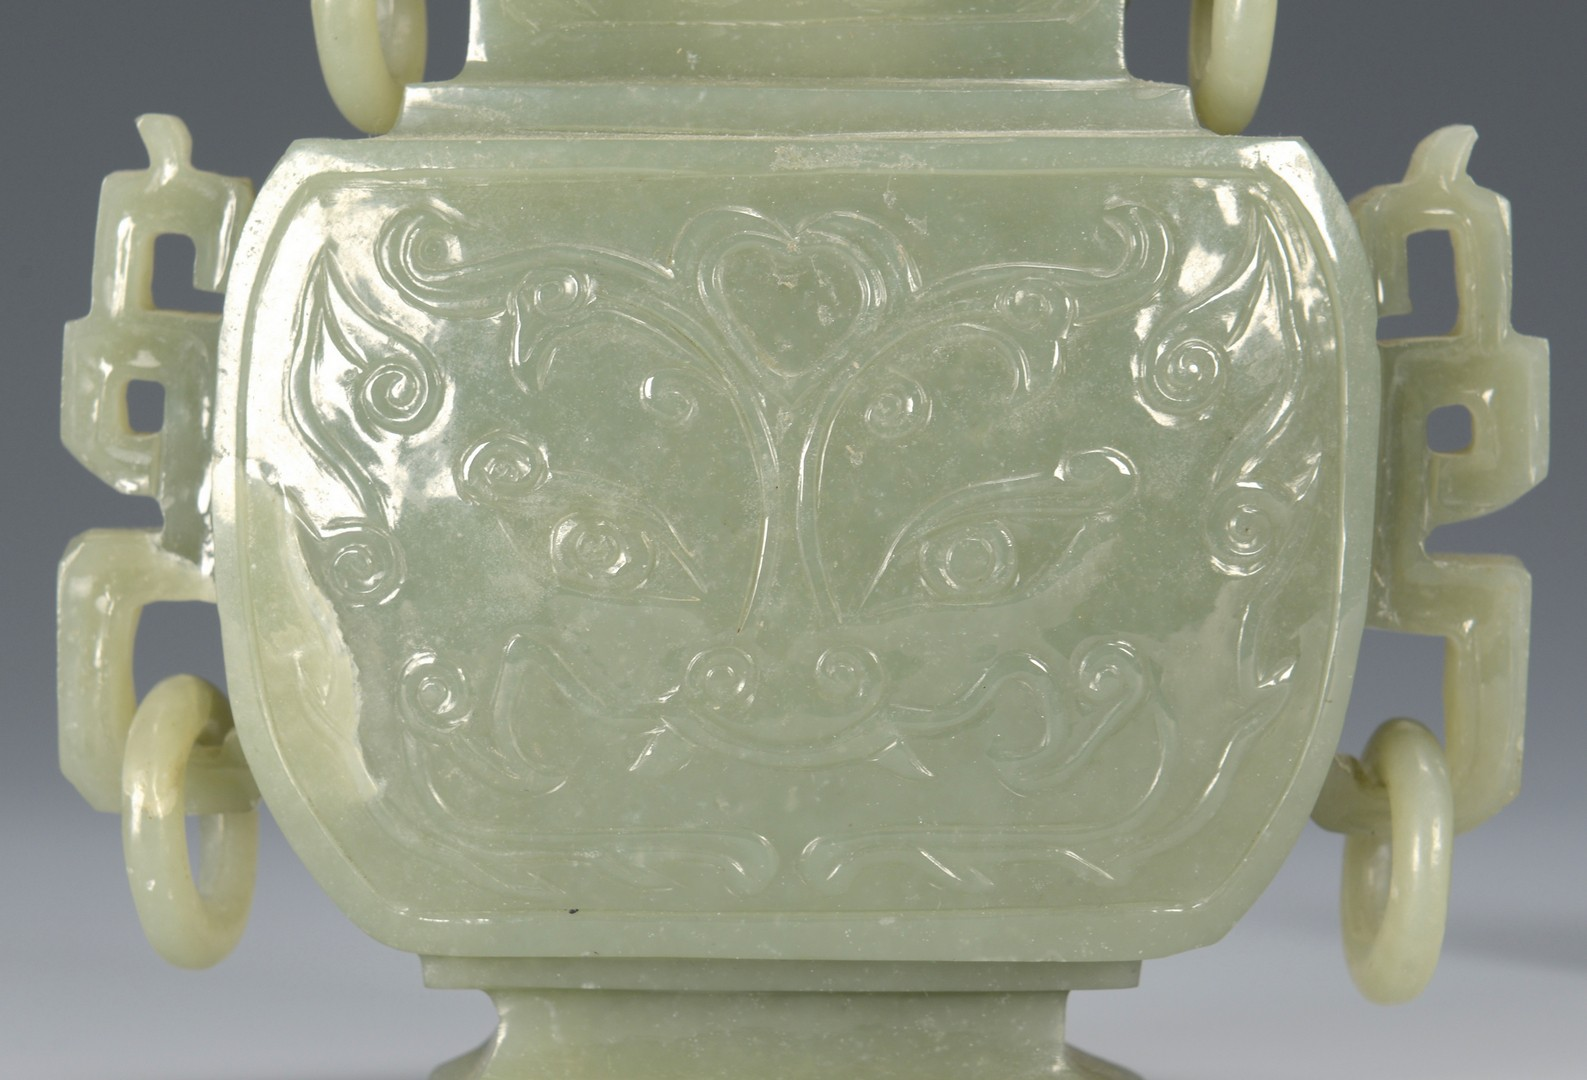 Lot 3594144: Celadon Jade covered vase with ring handles